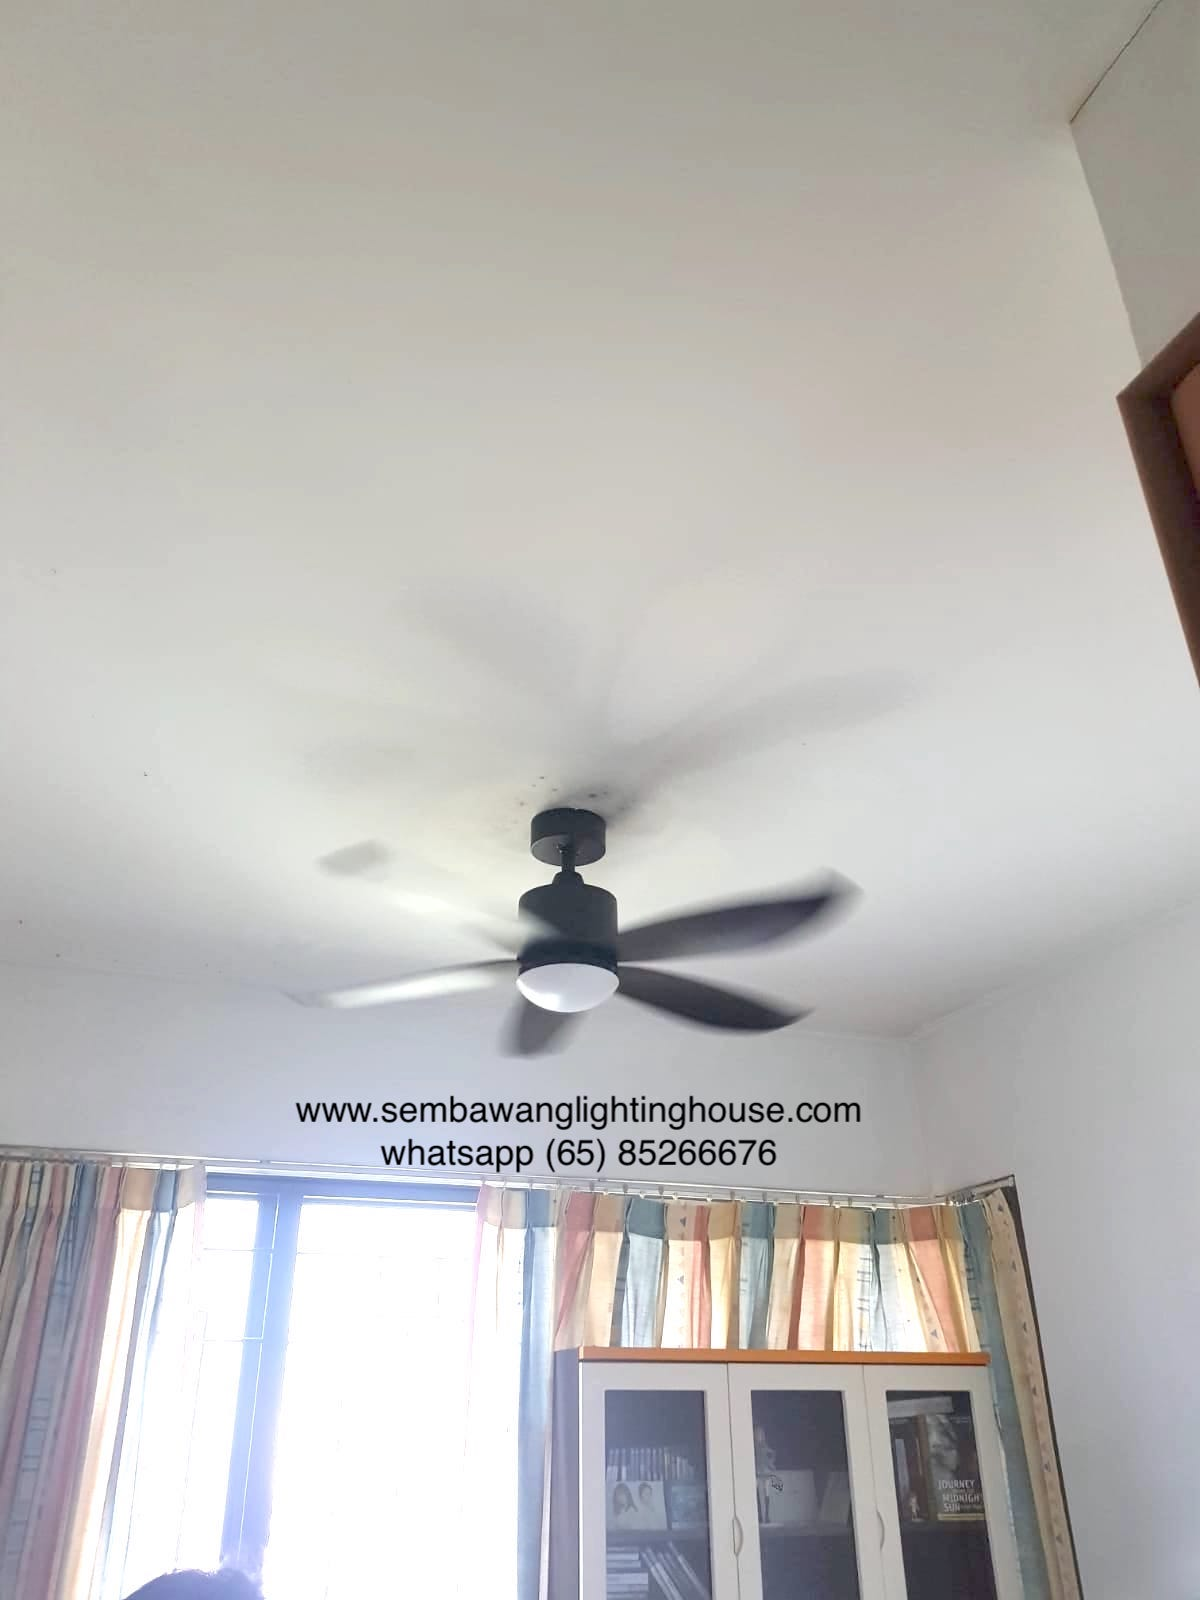 crestar-valueair-5-blade-black-ceiling-fan-sample-sembawang-lighting-house-01.jpg